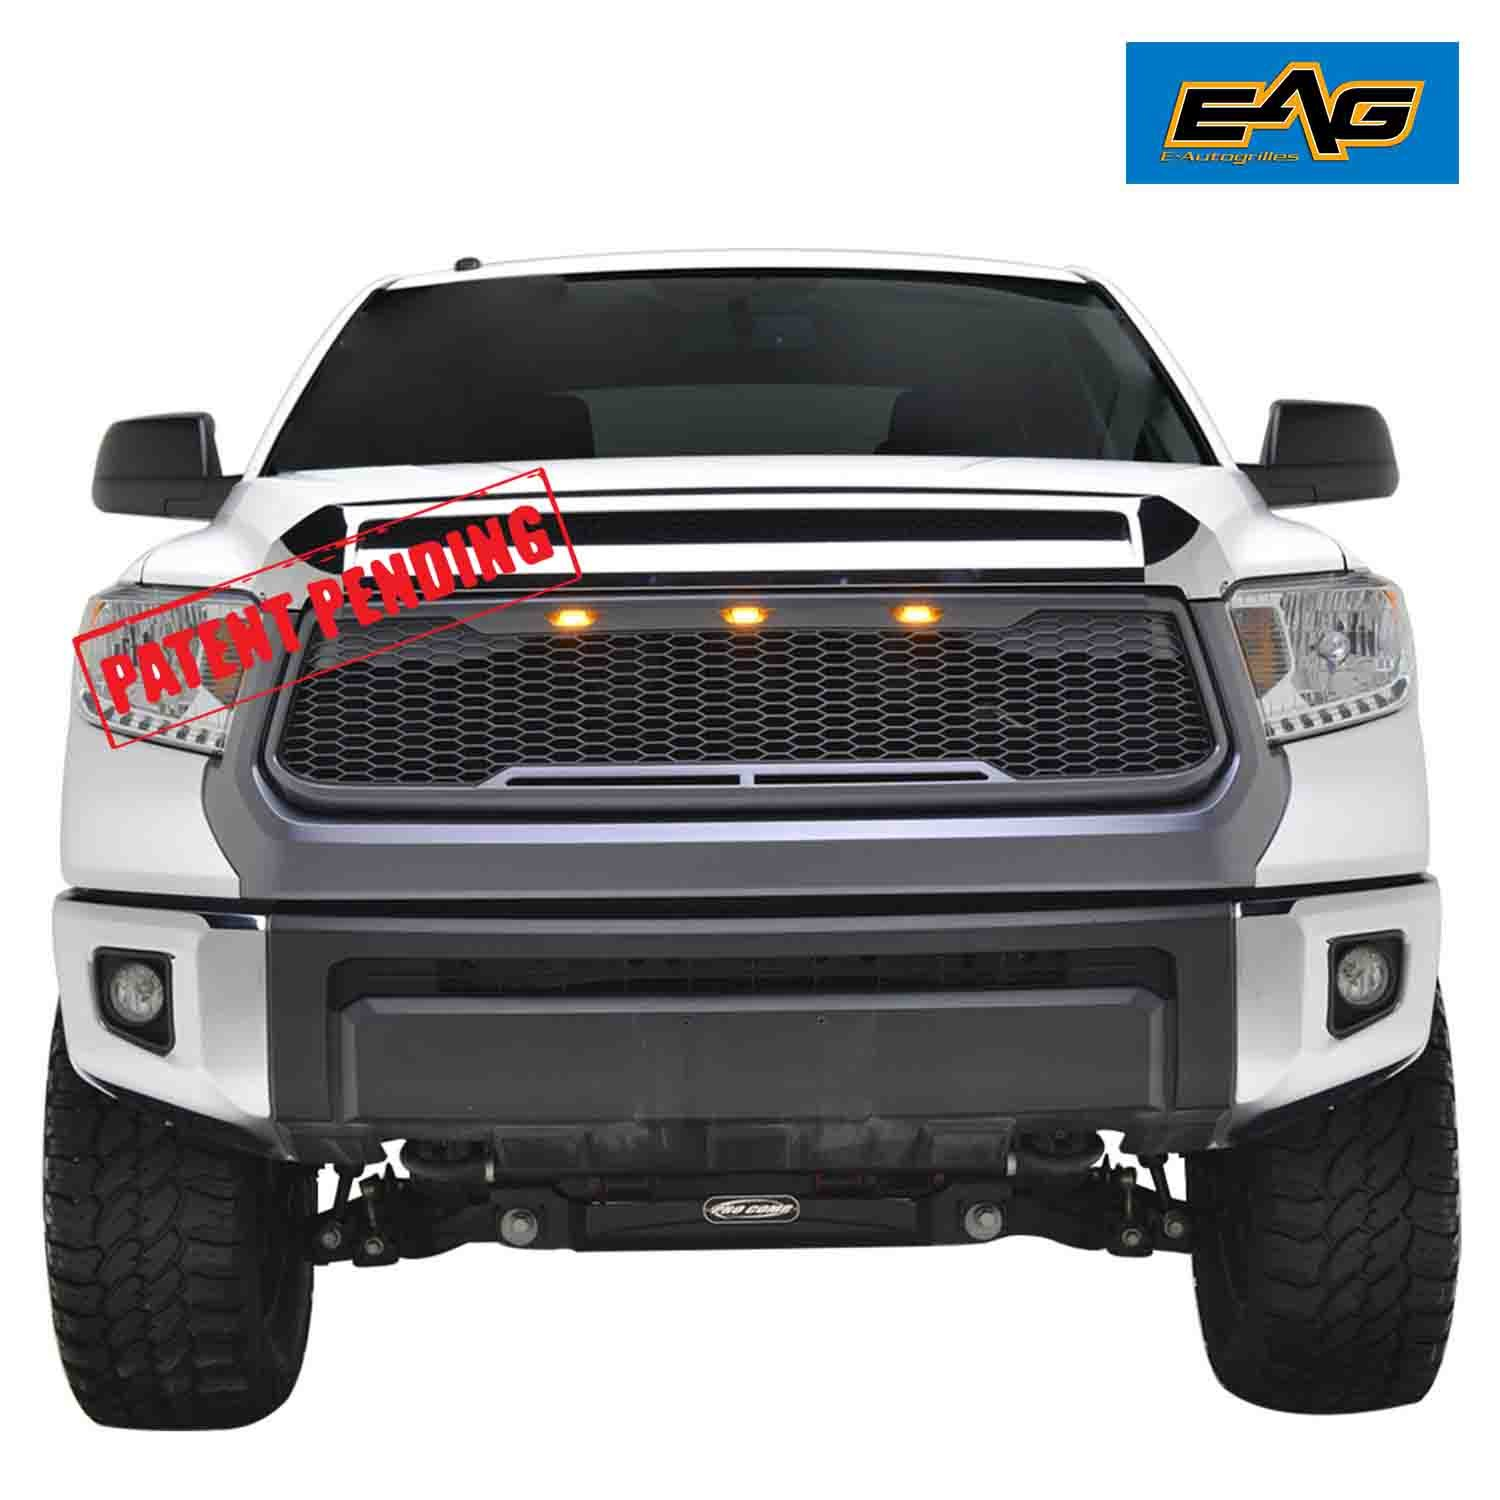 Eag Replacement Tundra Abs Grille Charcoal Gray With 2014 Wiring Diagram Lights Amber Led For 14 18 Toyota Automotive